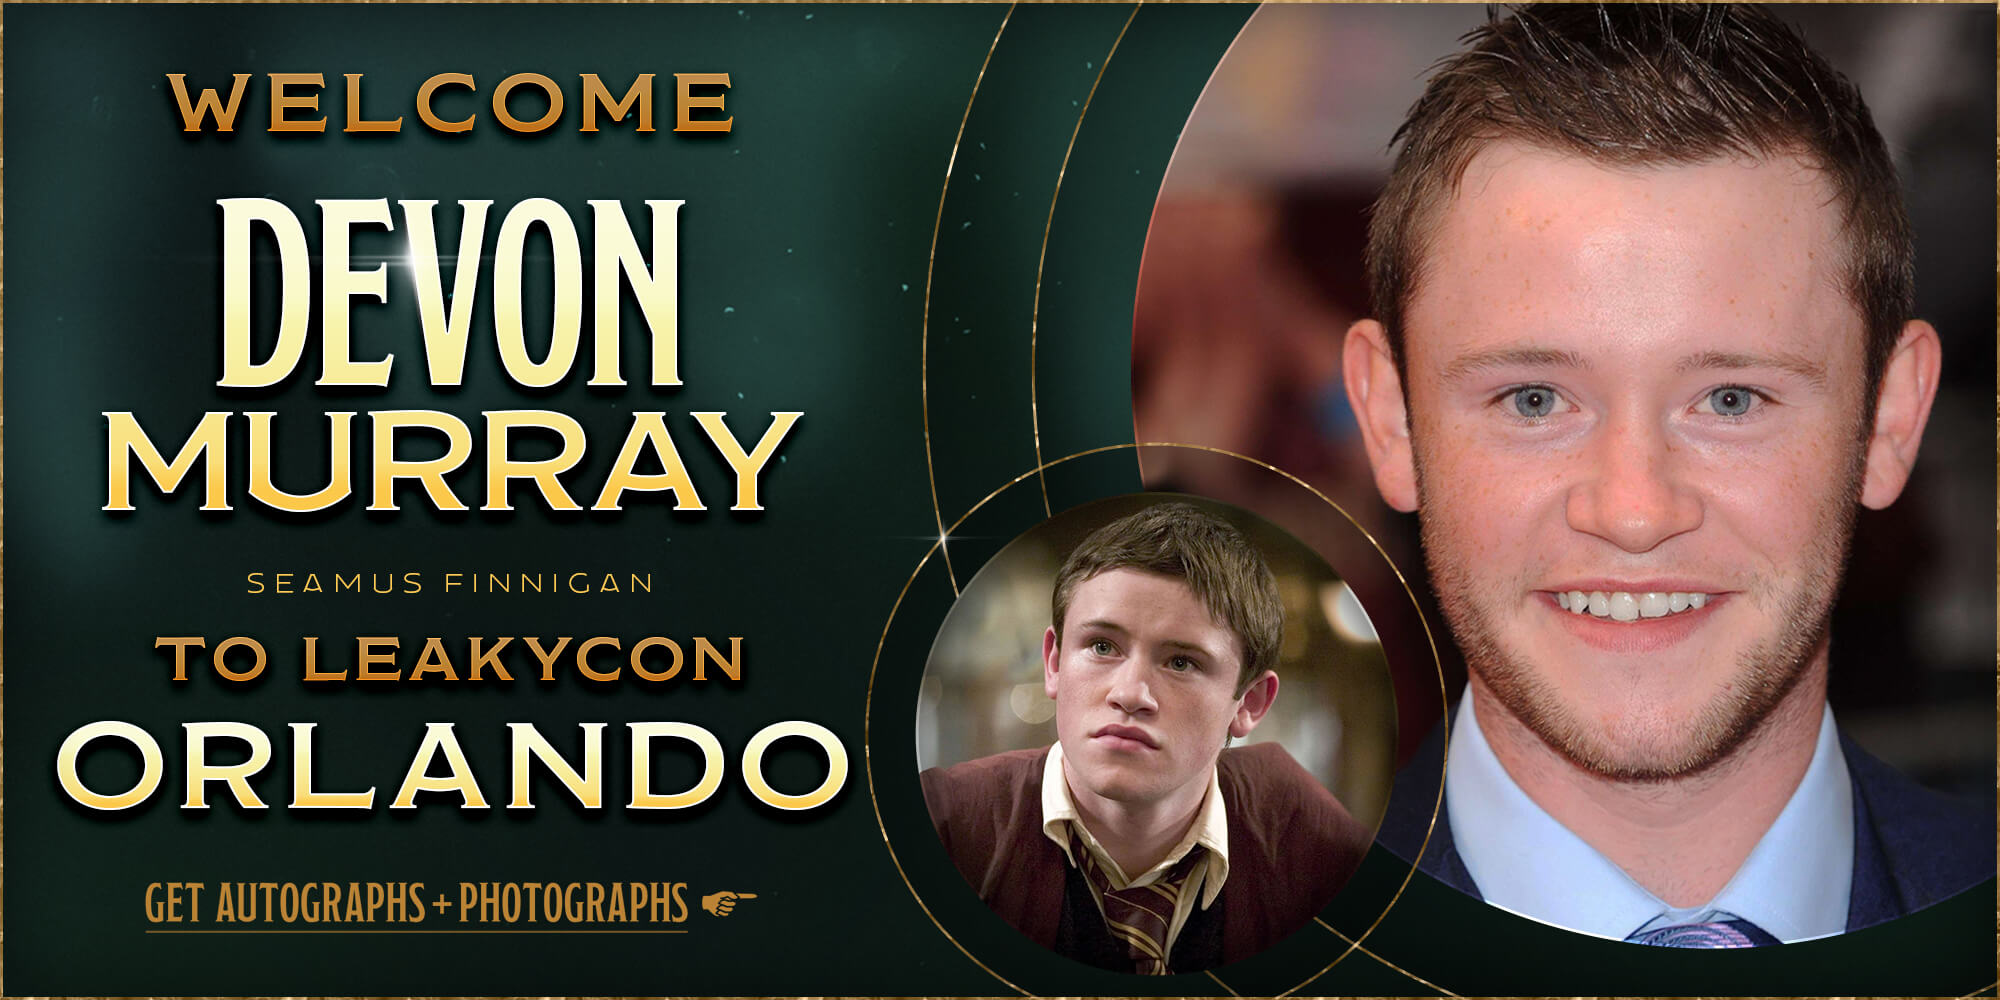 Welcome Devon Murray to LeakyCon Orlando!